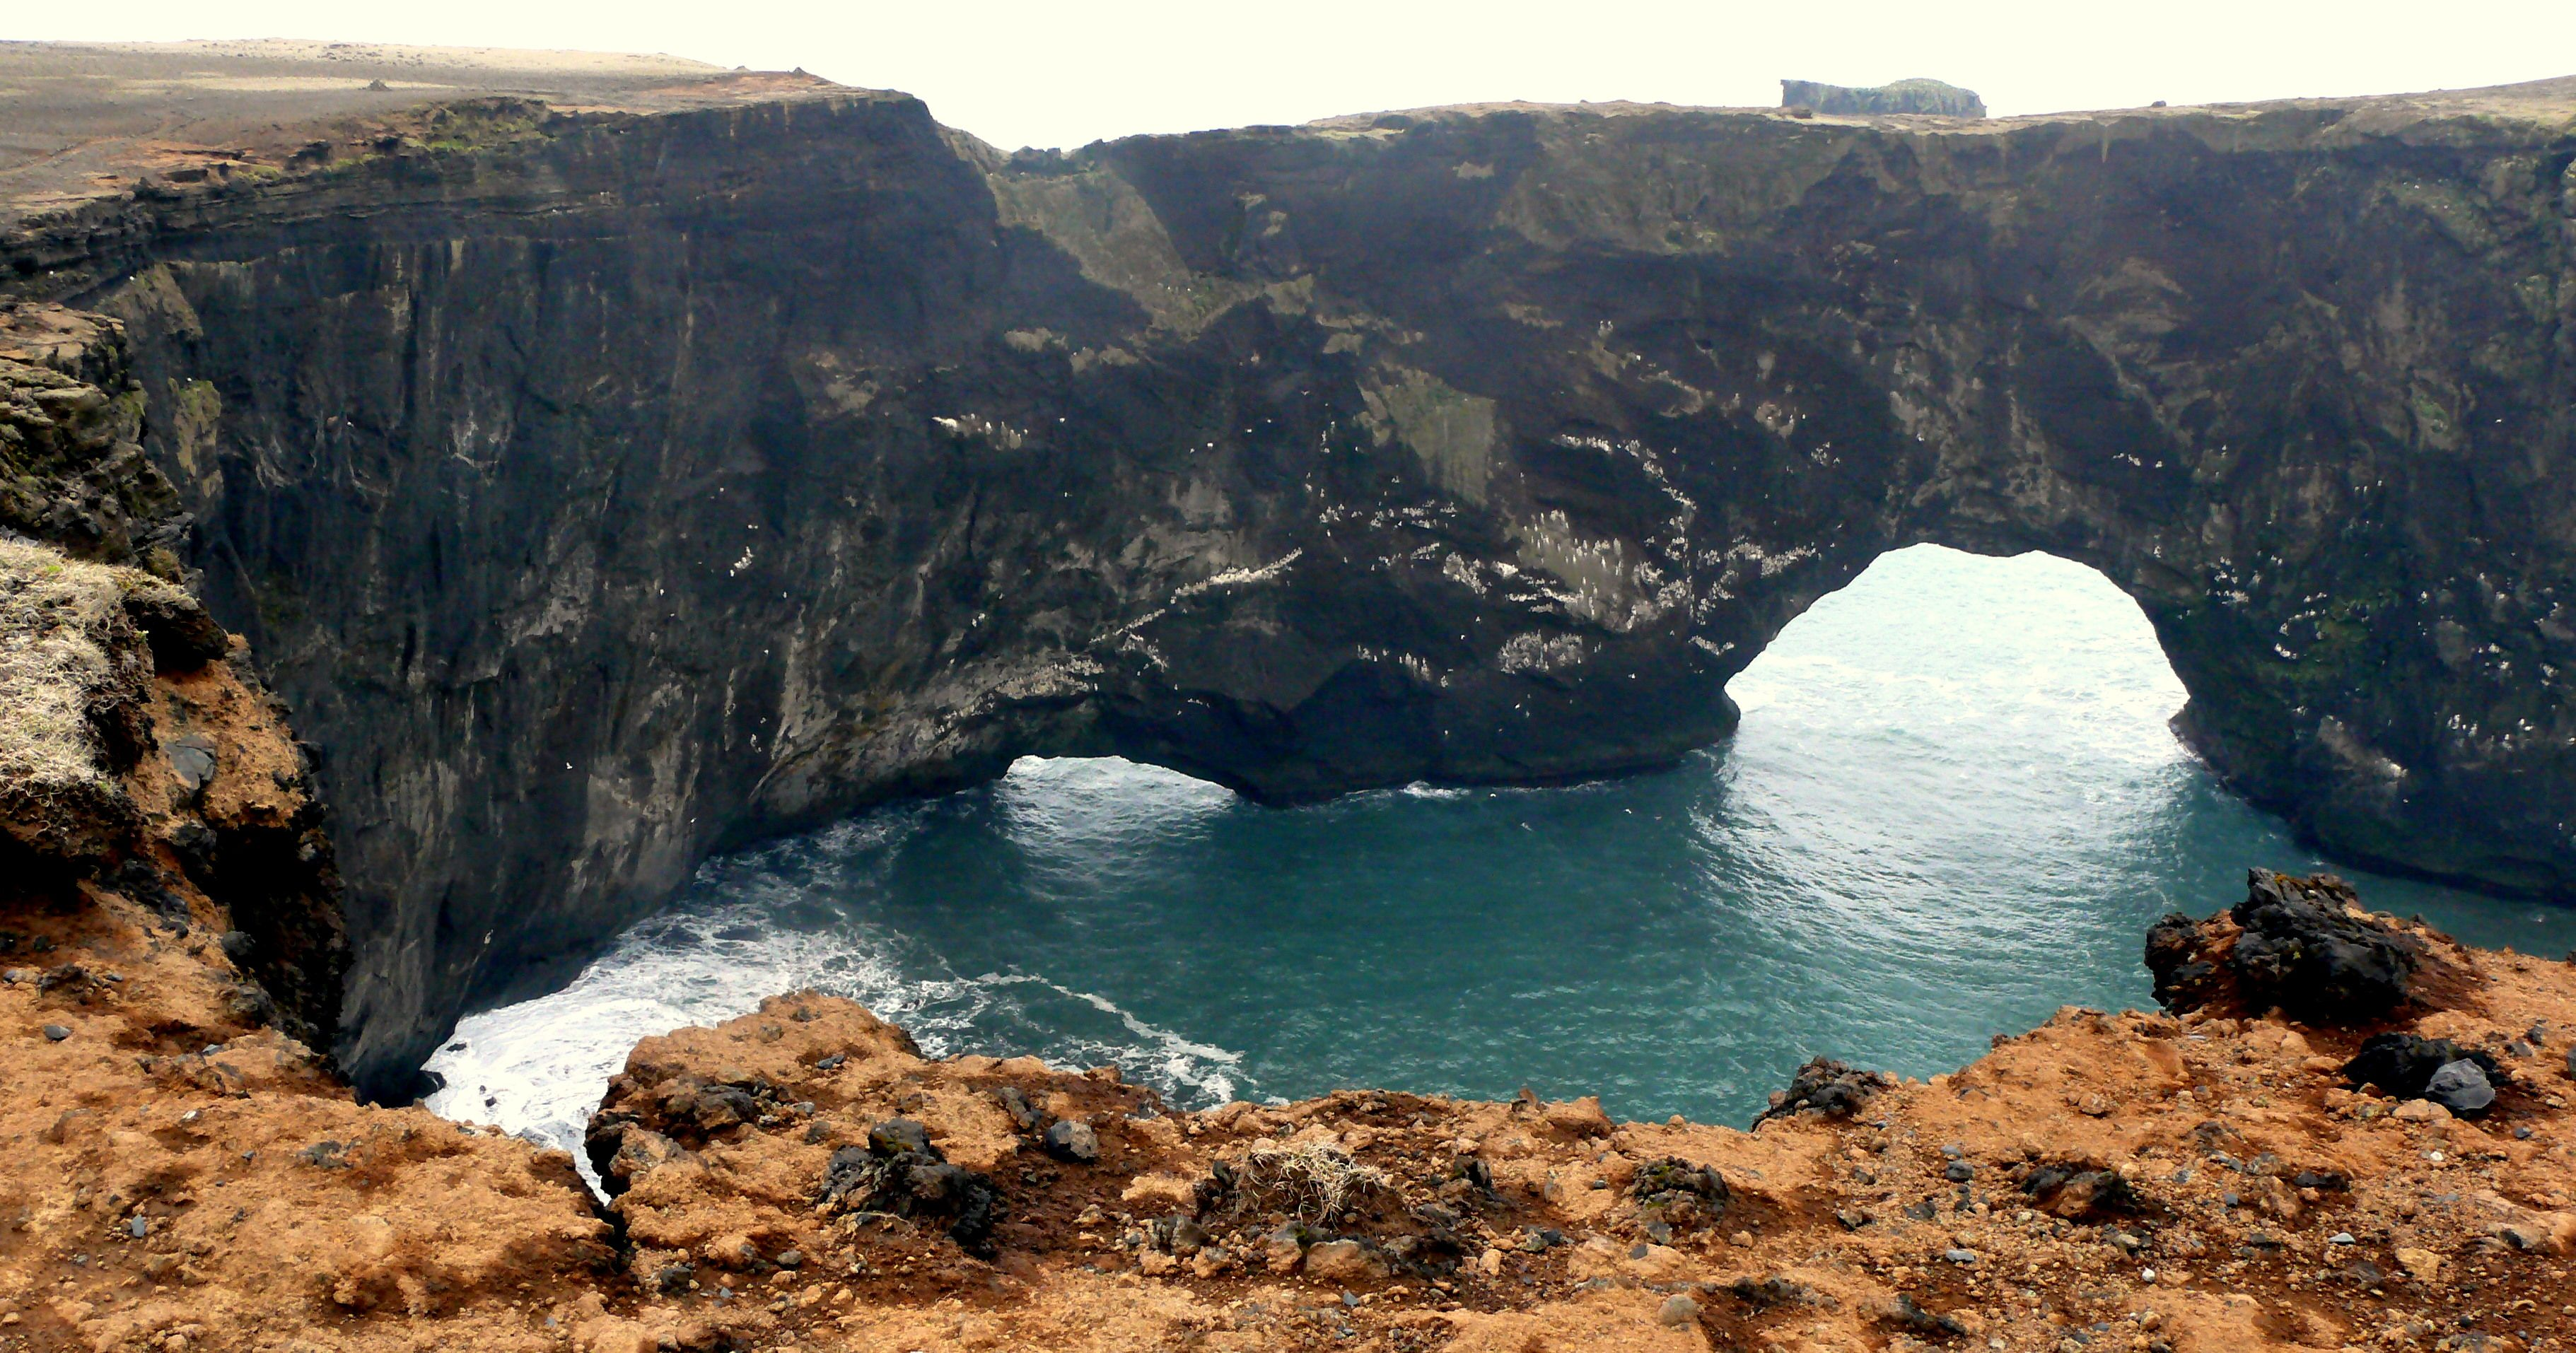 Natural arch or bridge formed by erosional processes  (Photo by Judith B. Trimarchi starranchnm.com)  Iceland